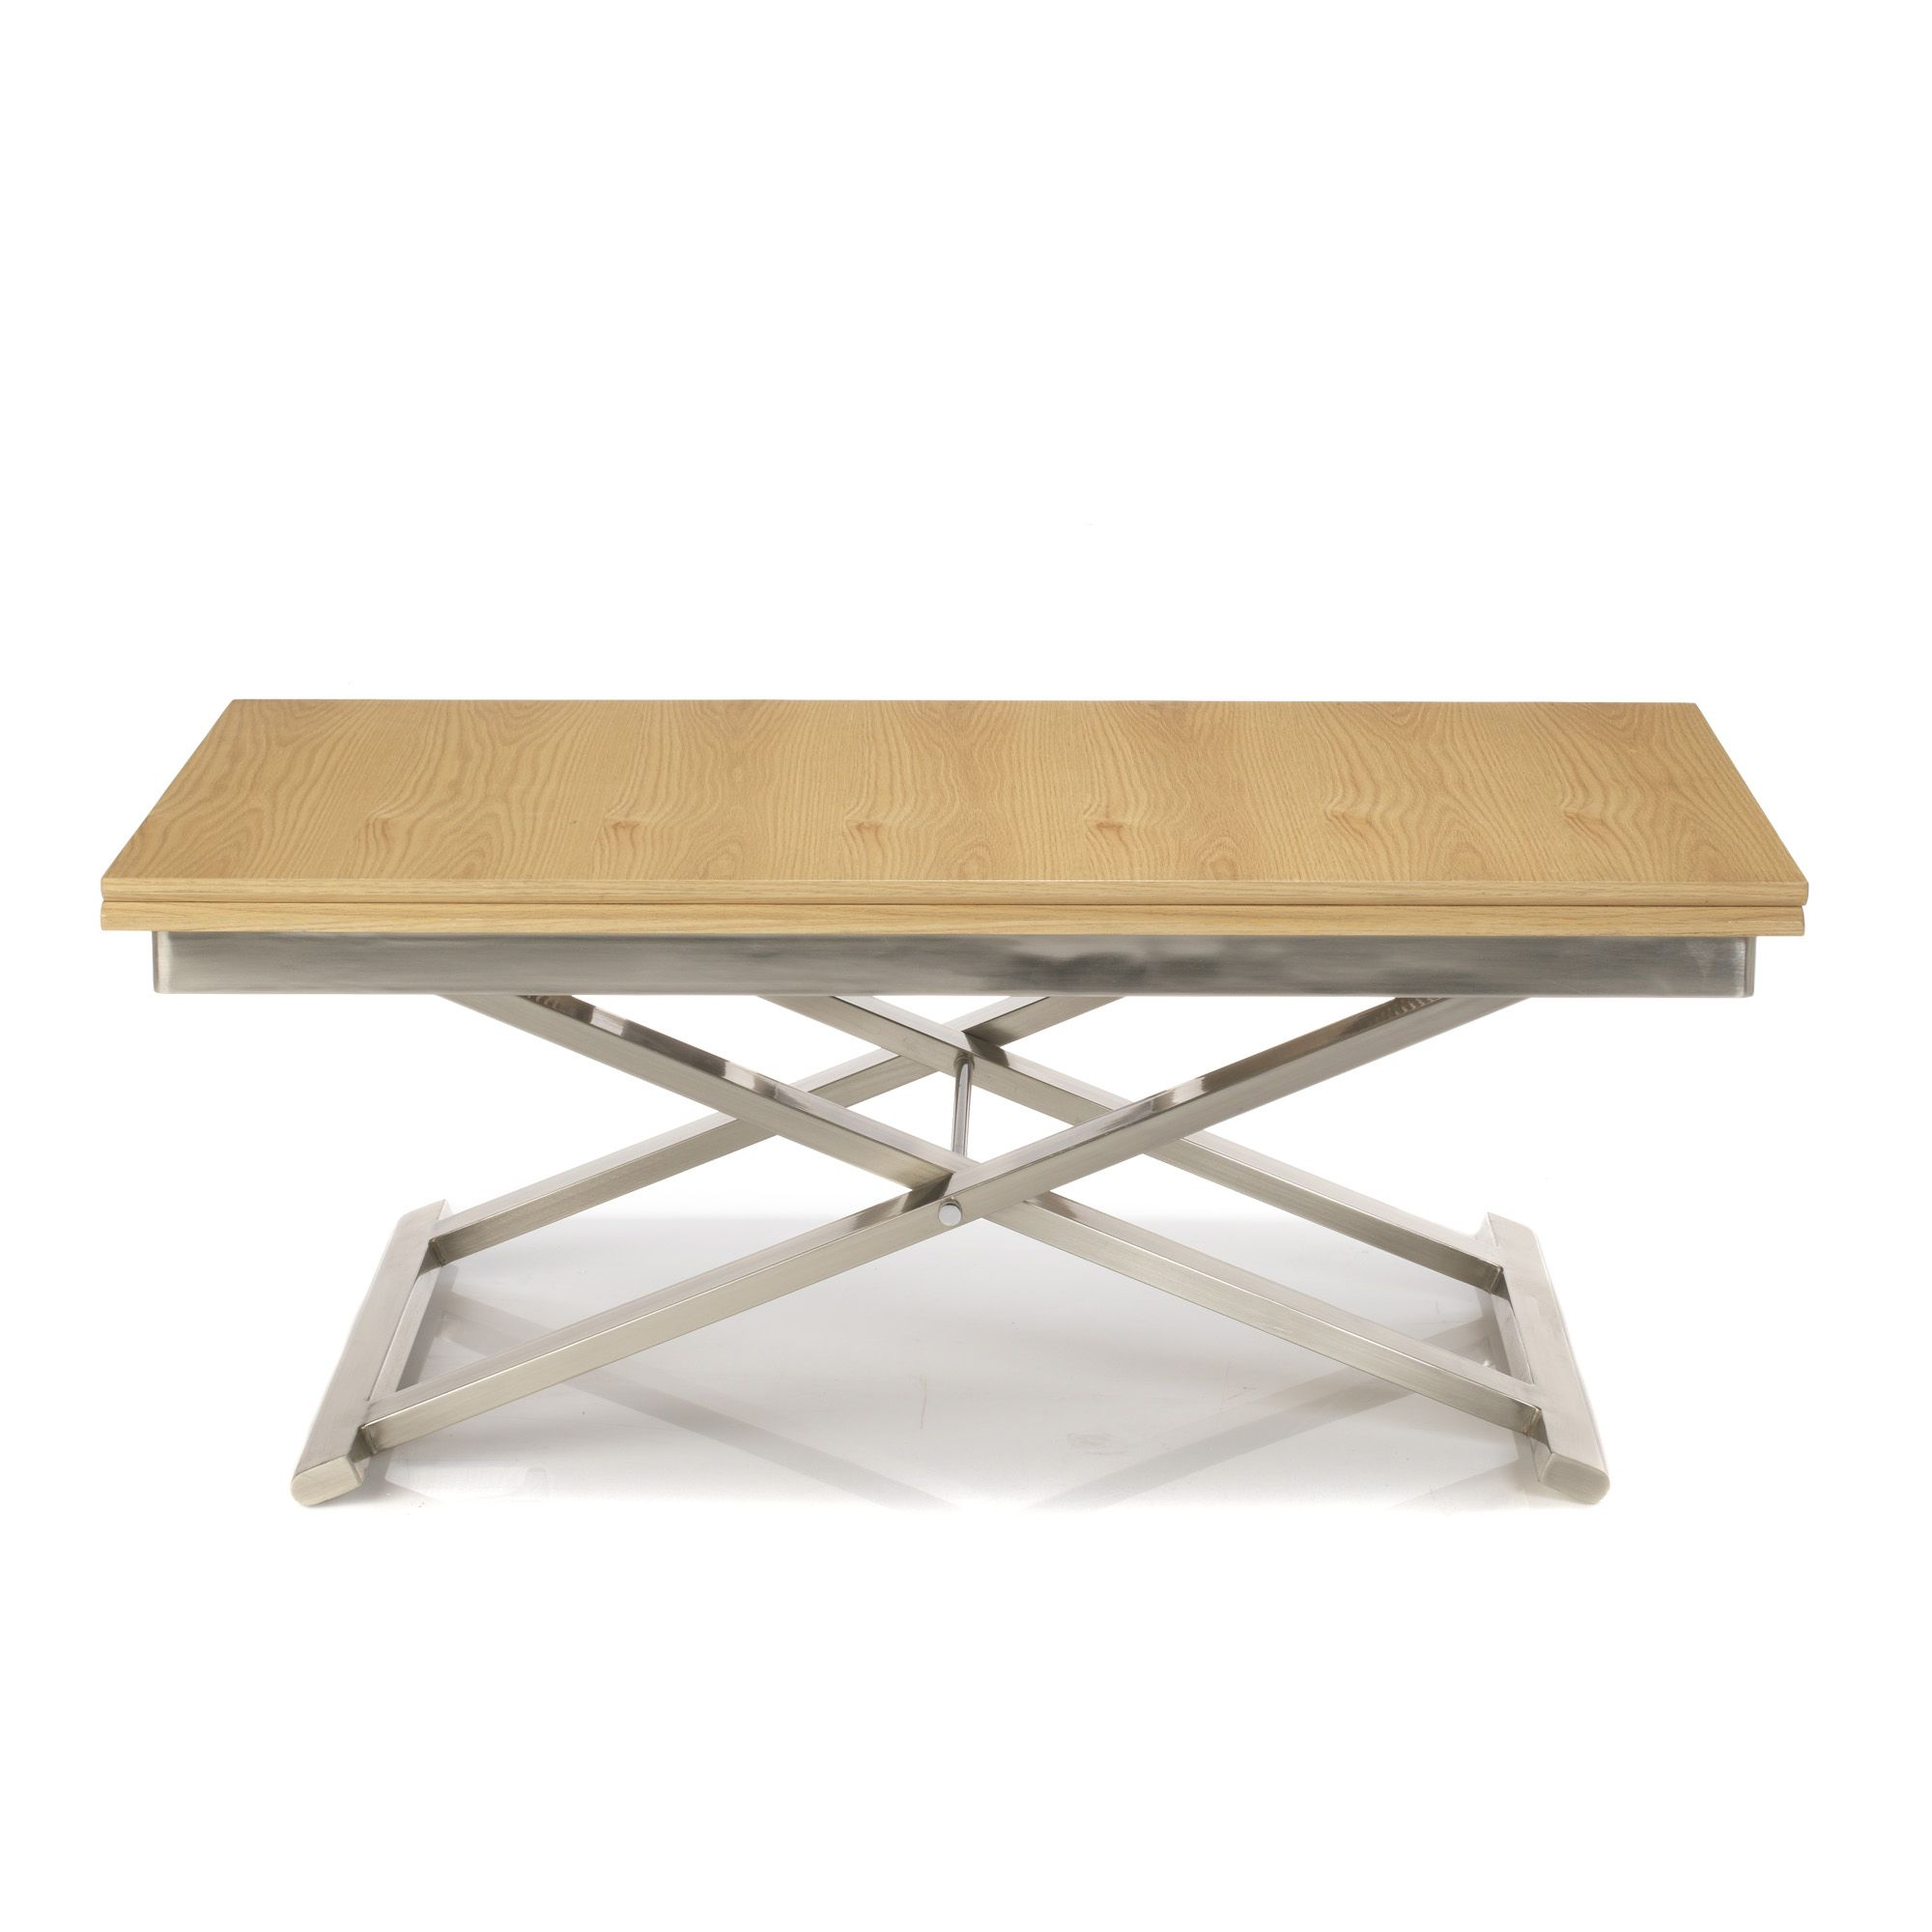 table-basse-multi-positions Frais De Aquarium Table Basse Pas Cher